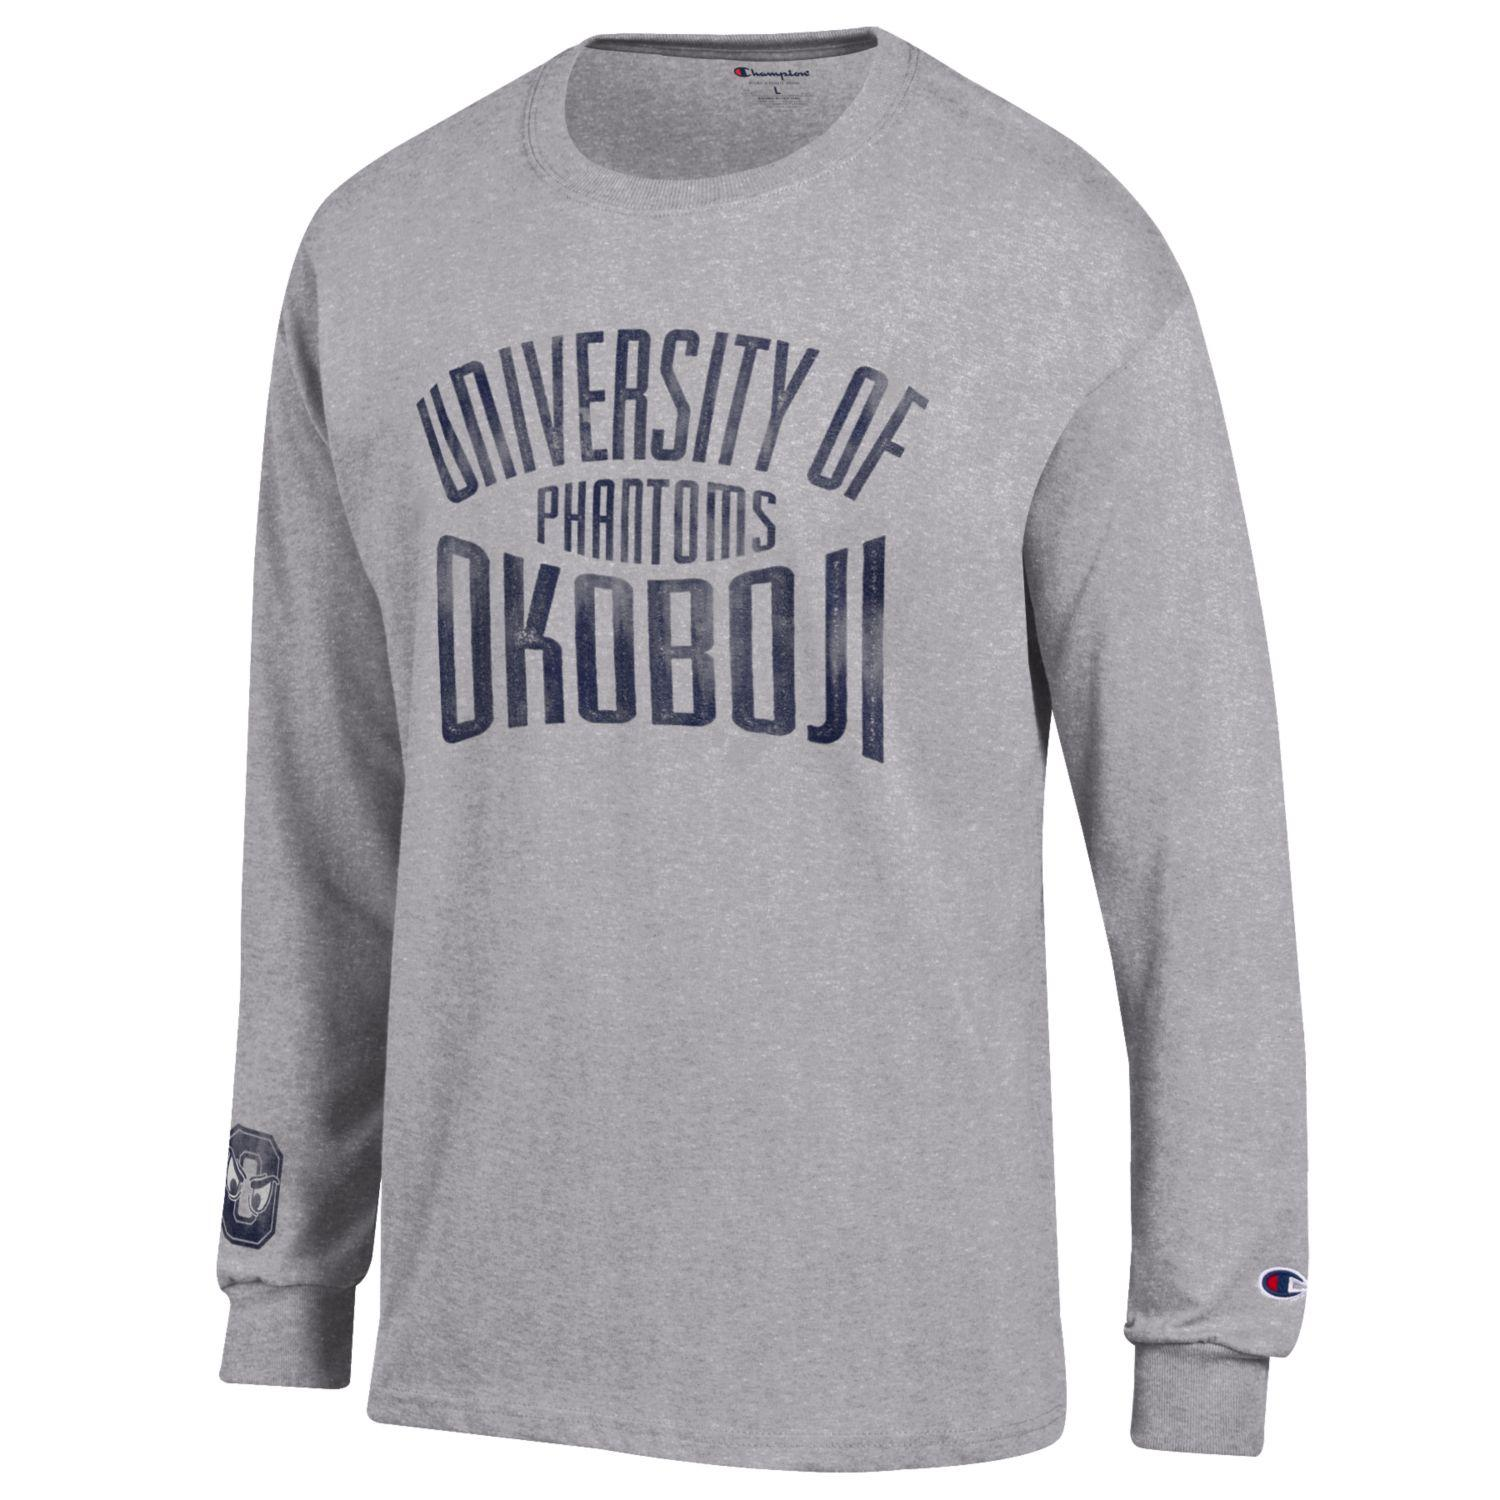 University of Okoboji Phantoms Champion Long Sleeve Tee